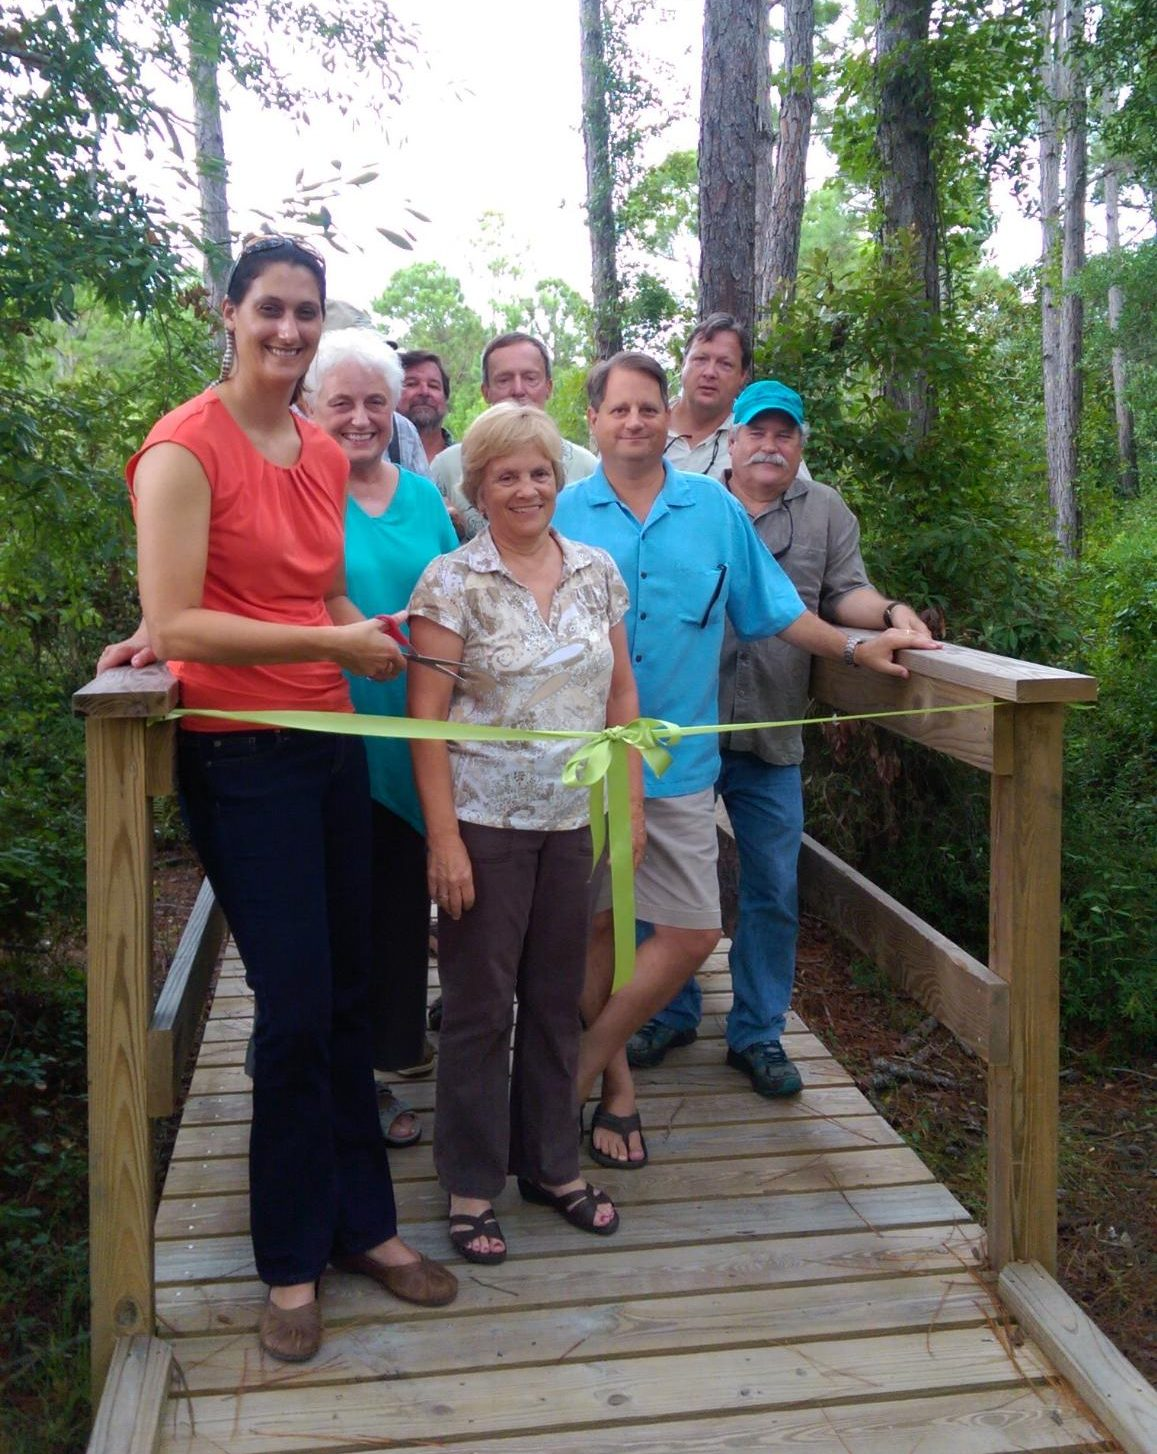 ANERR Boardwalk Ribbon-Cutting Ceremony